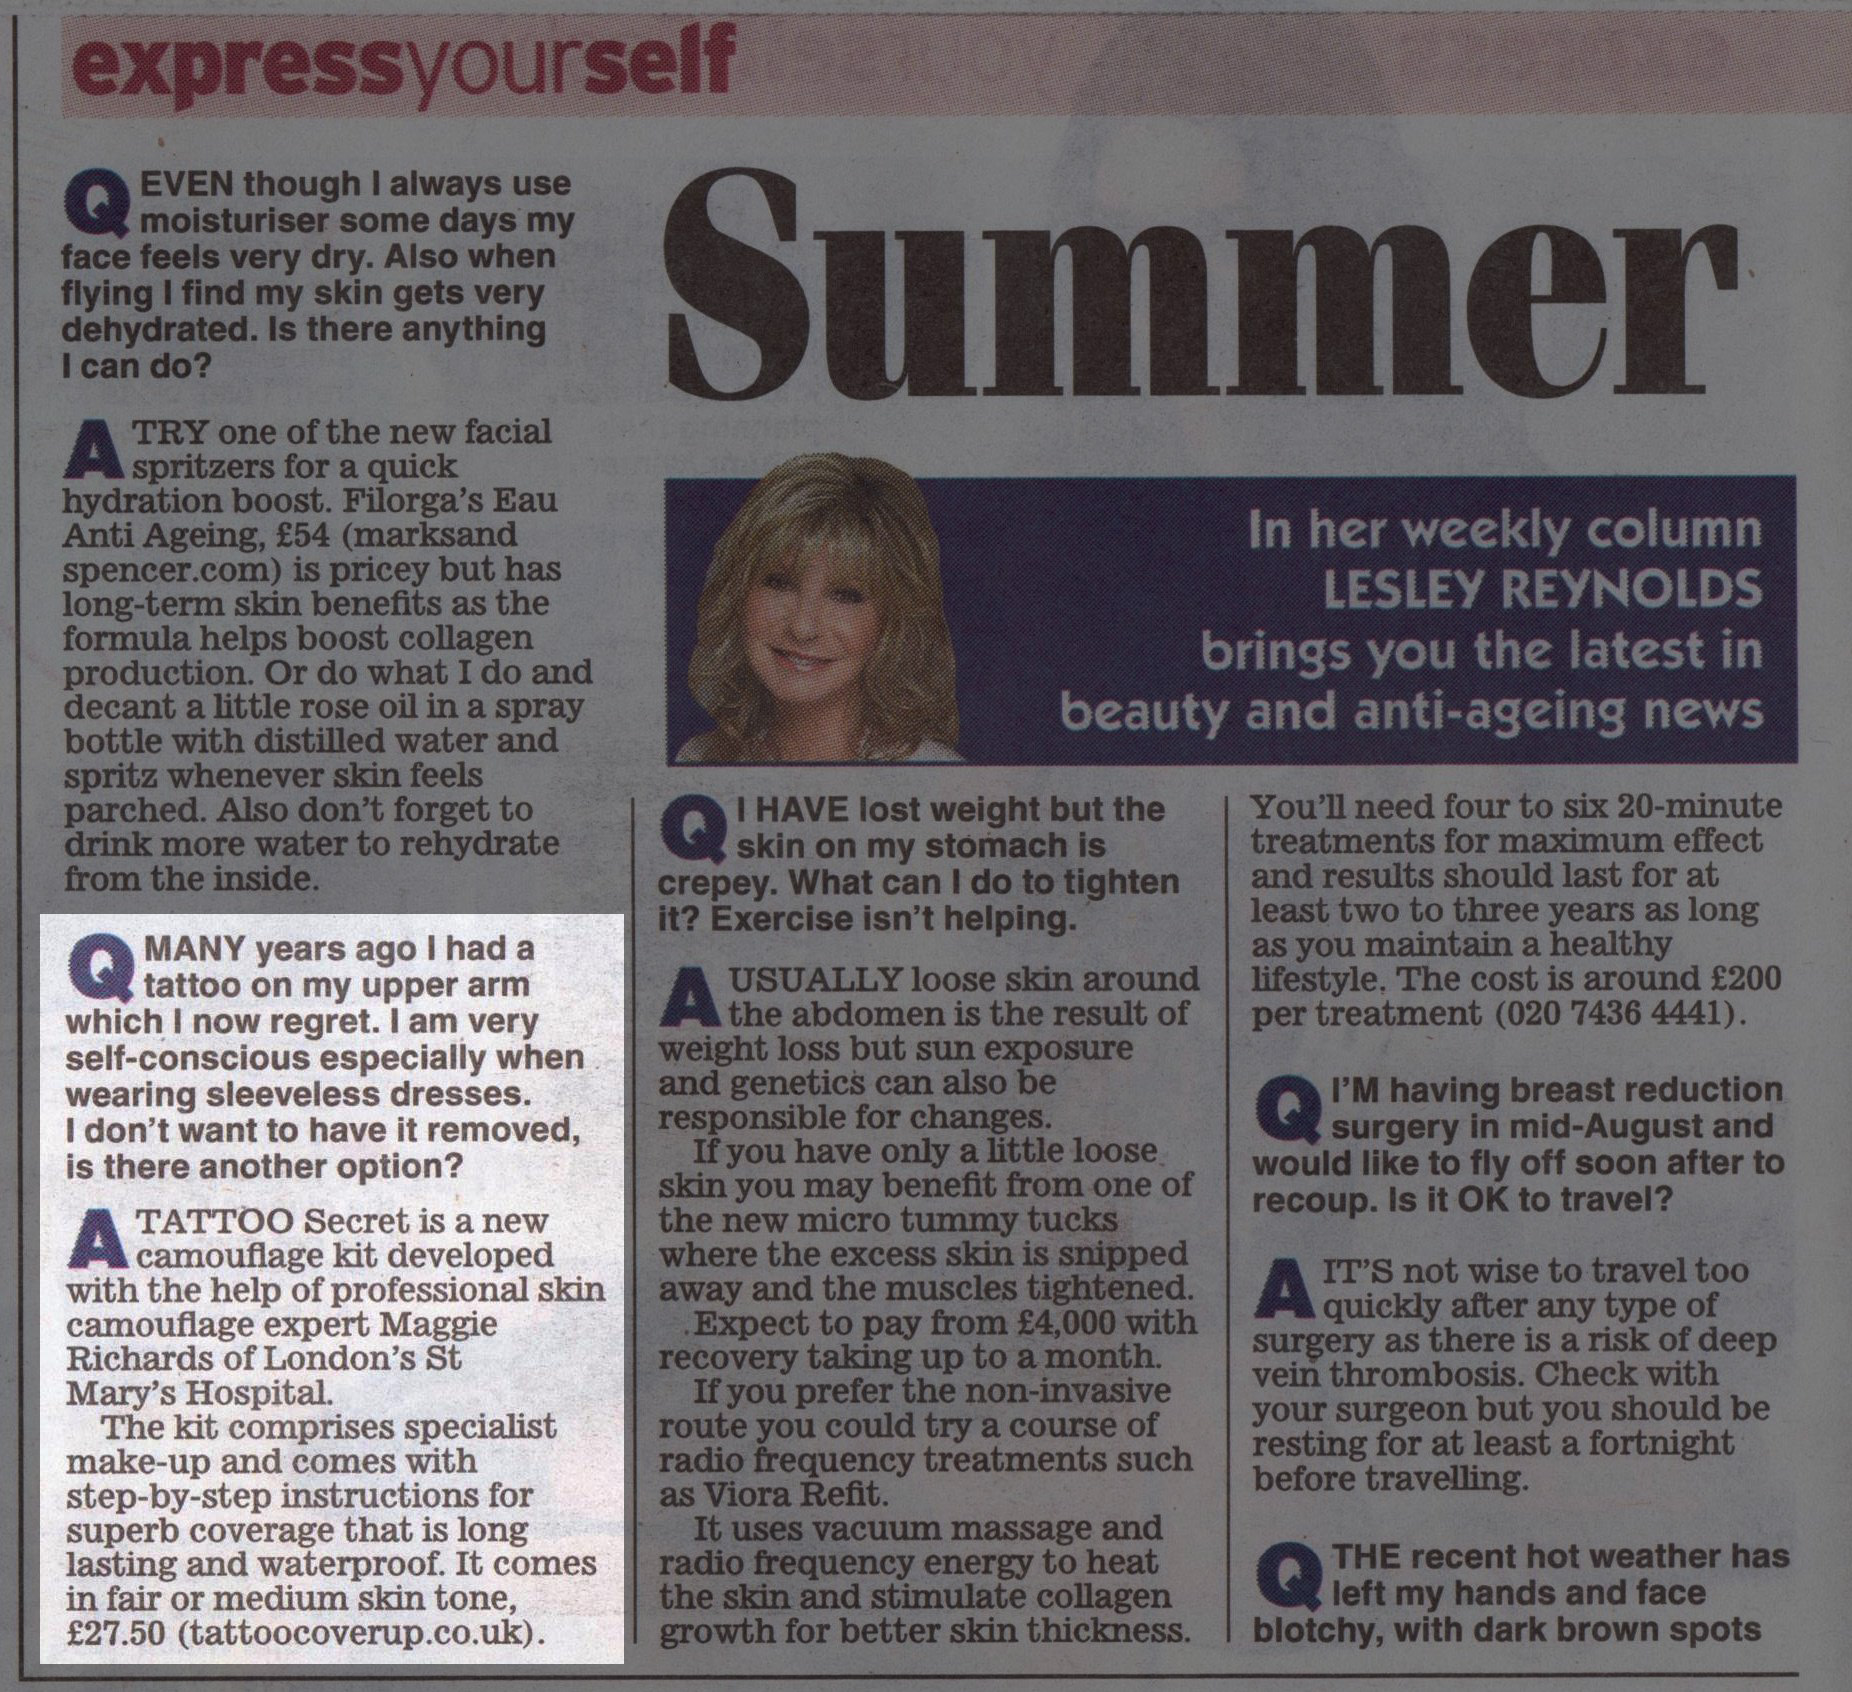 Tattoo Secret Reviewed by the Daily Express 8 Aug 2013